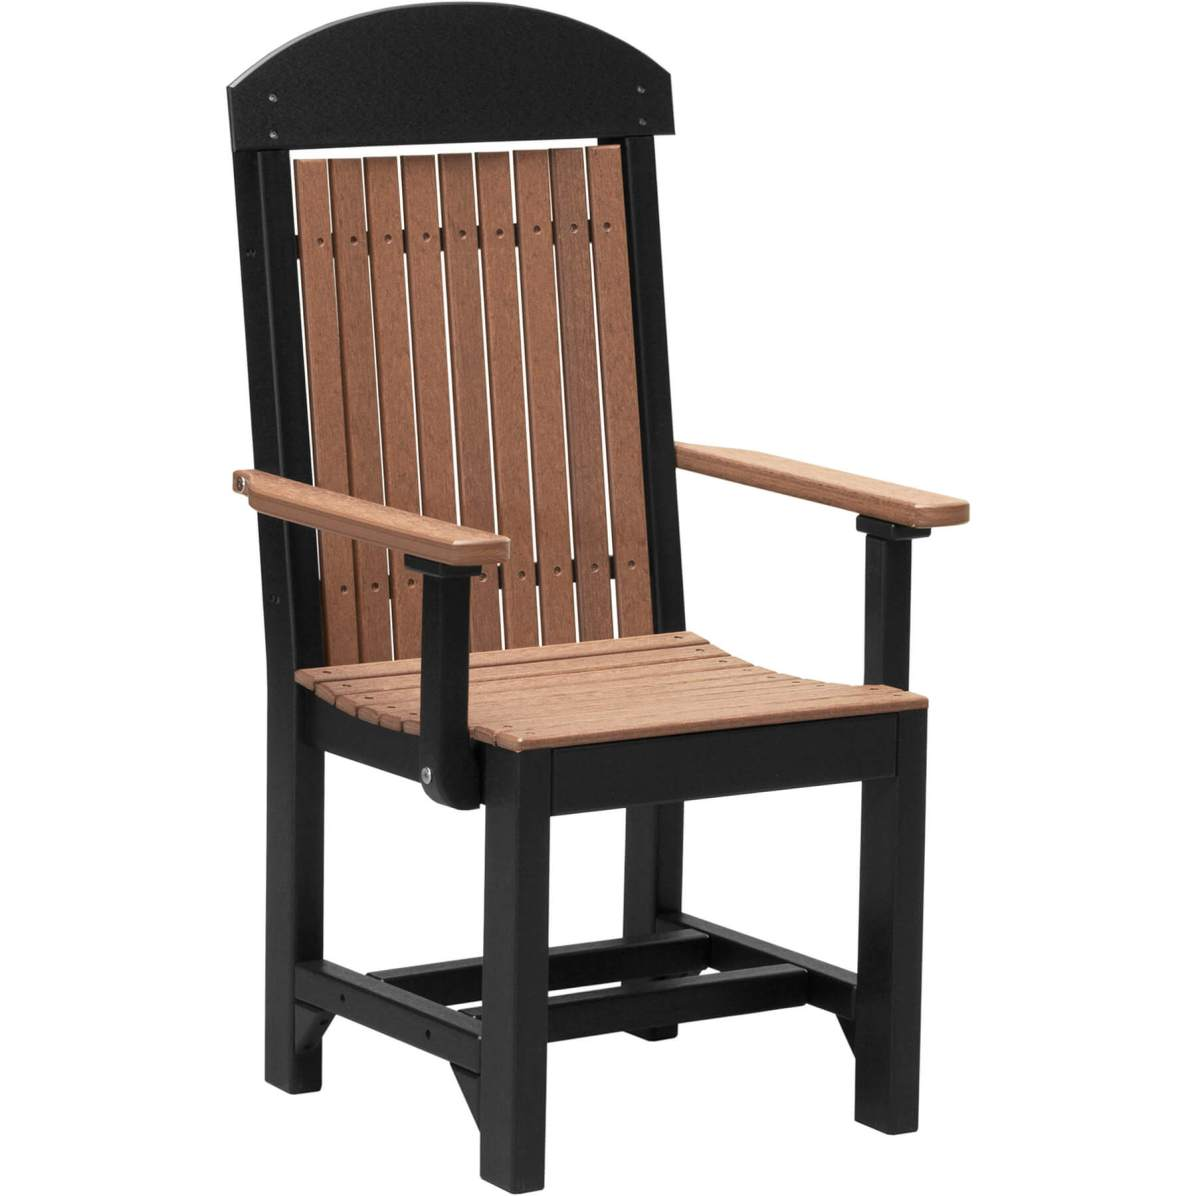 PCCDAMB Poly Captain Chair Dining Height (Antique Mahogany & Black)